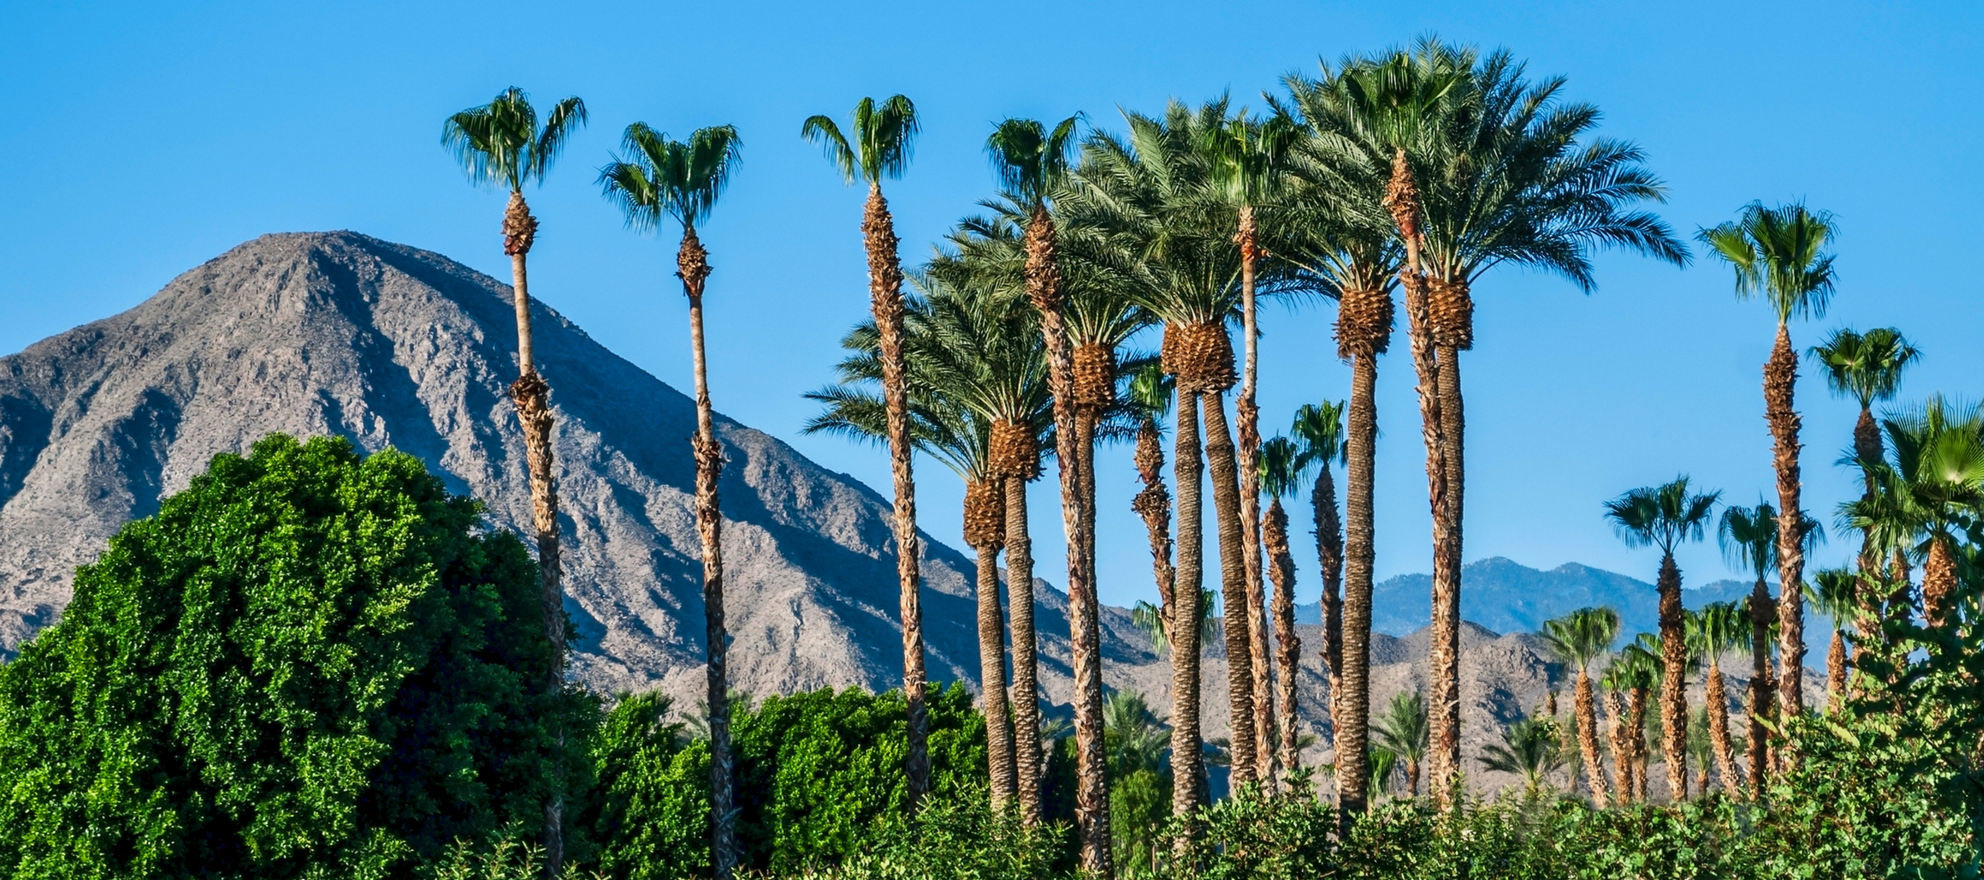 Real estate leaders gear up for radical meeting in the desert